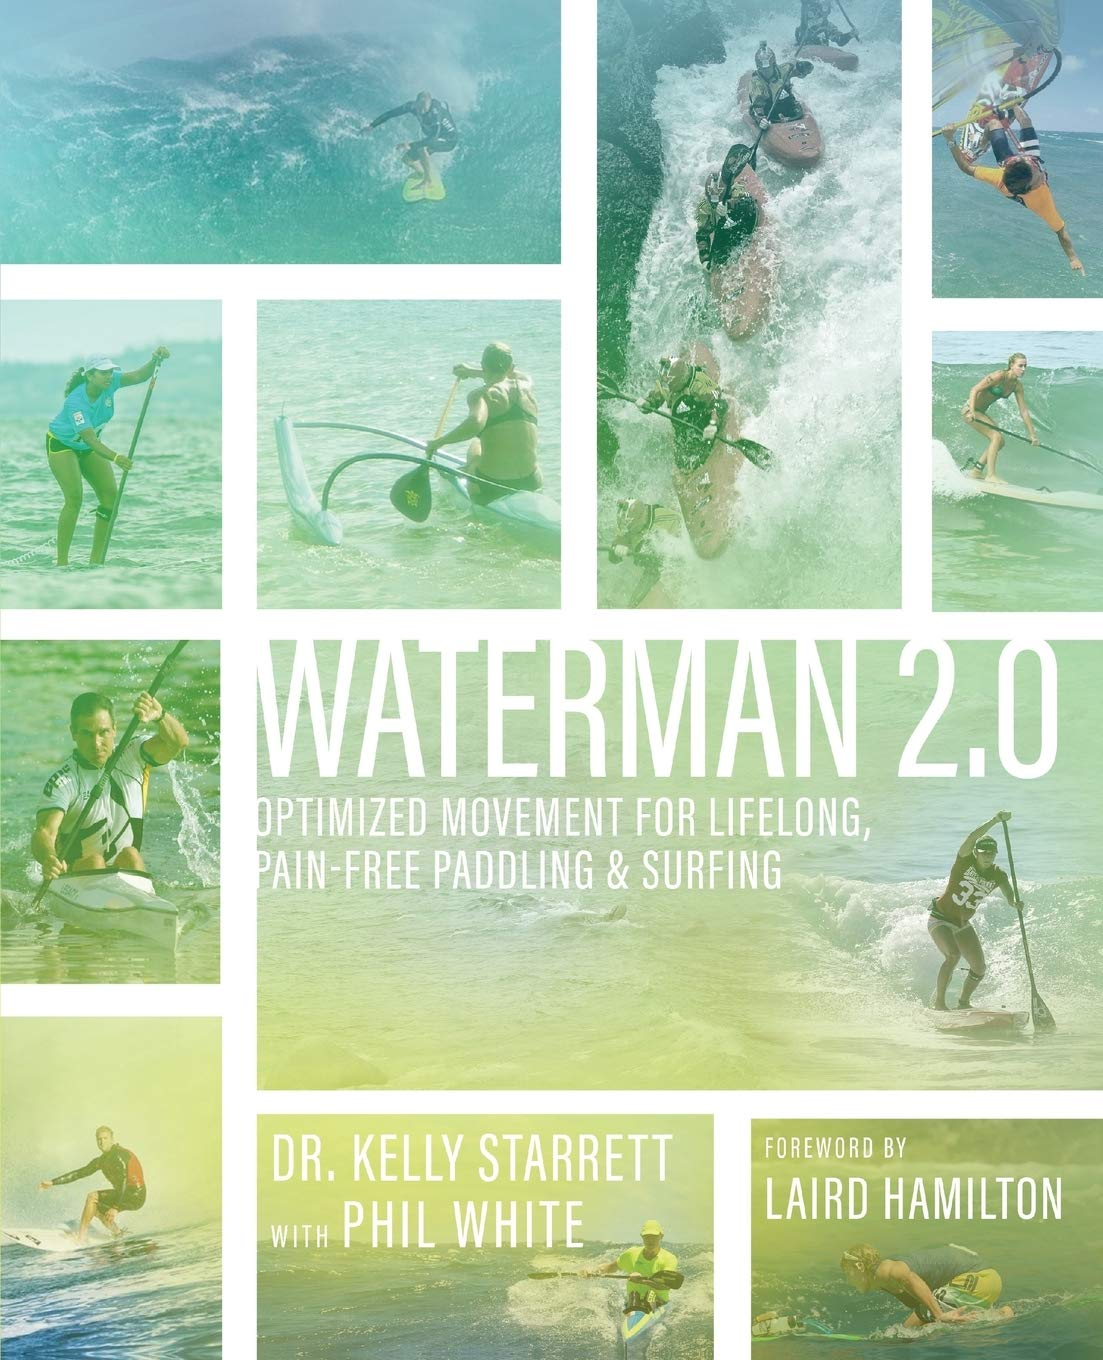 Image OfWaterman 2.0: Optimized Movement For Lifelong, Pain-Free Paddling And Surfing